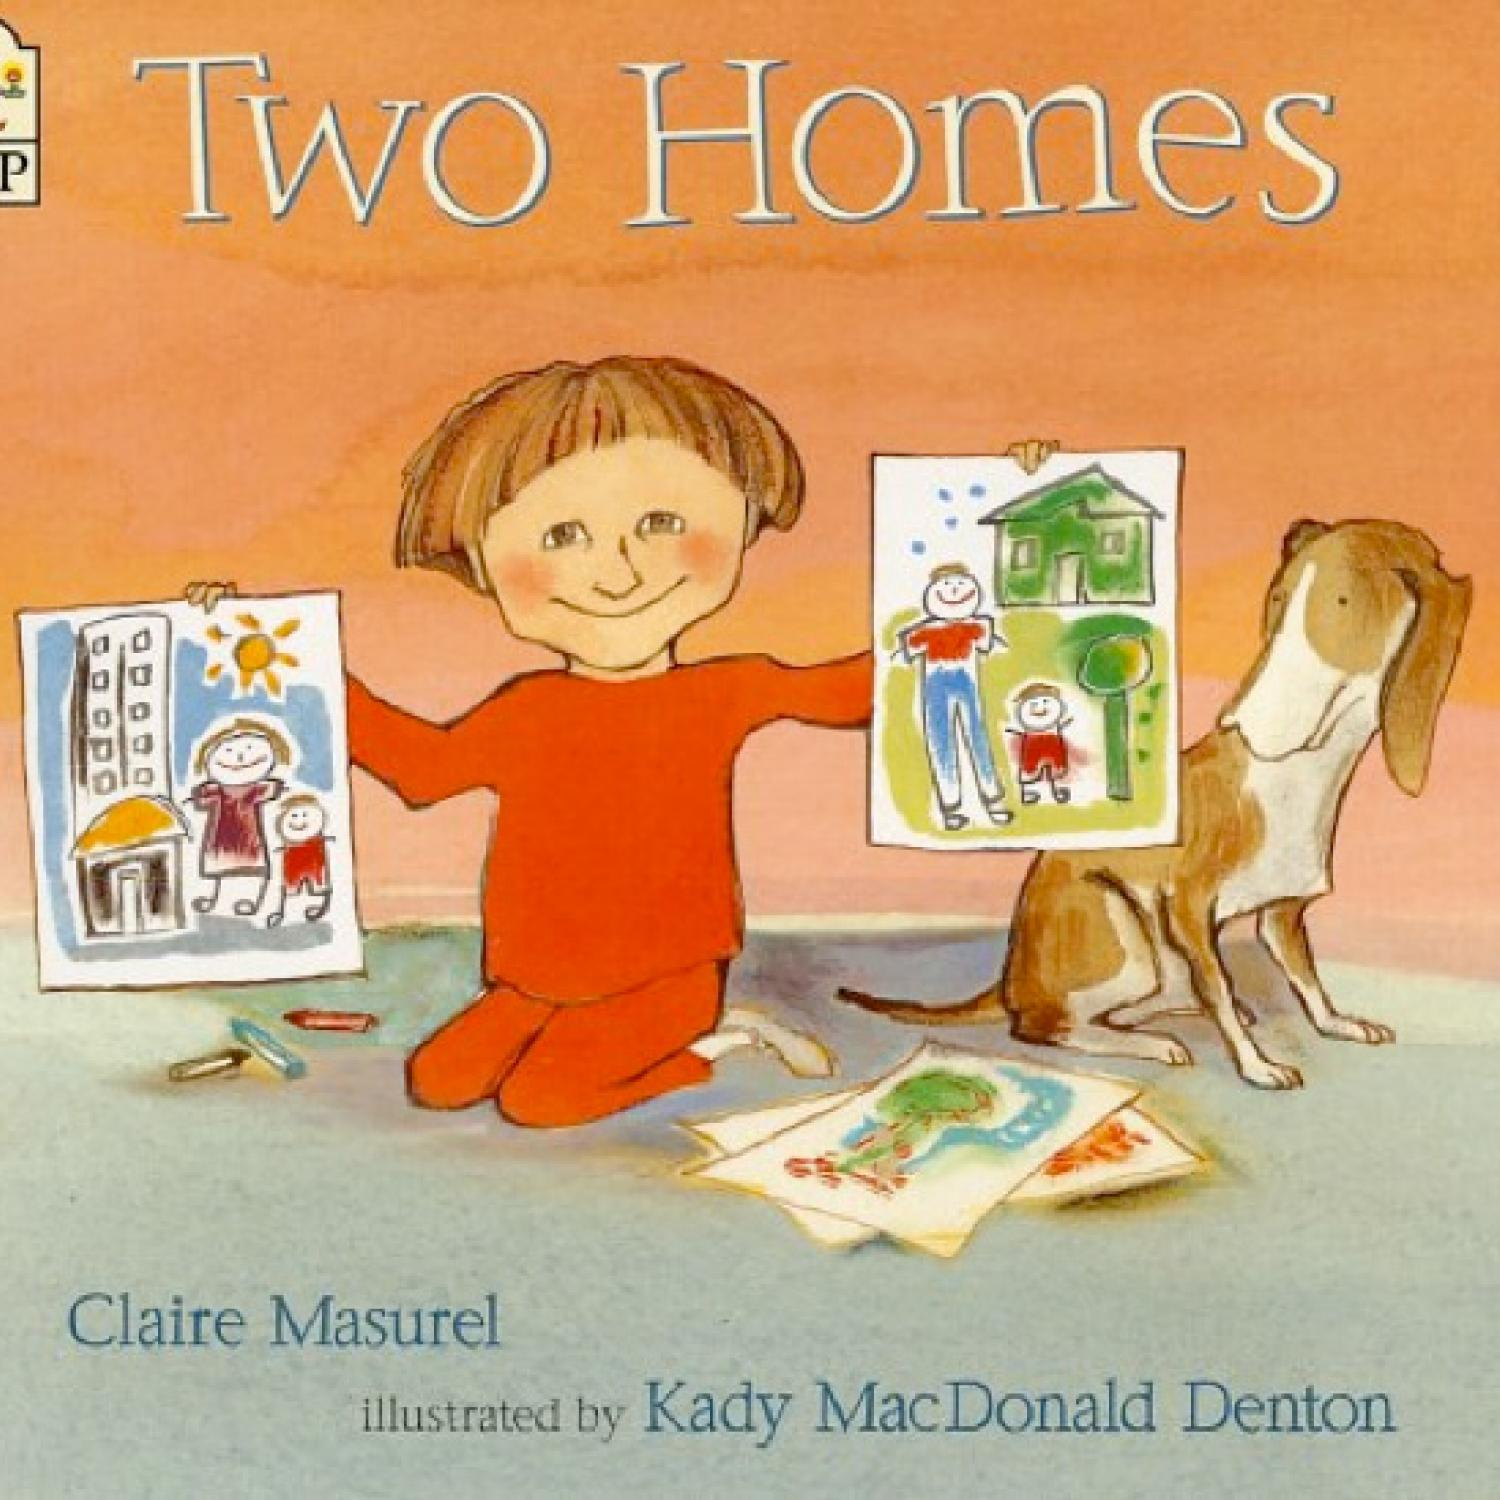 Funny Books For Kids Going Through Divorce